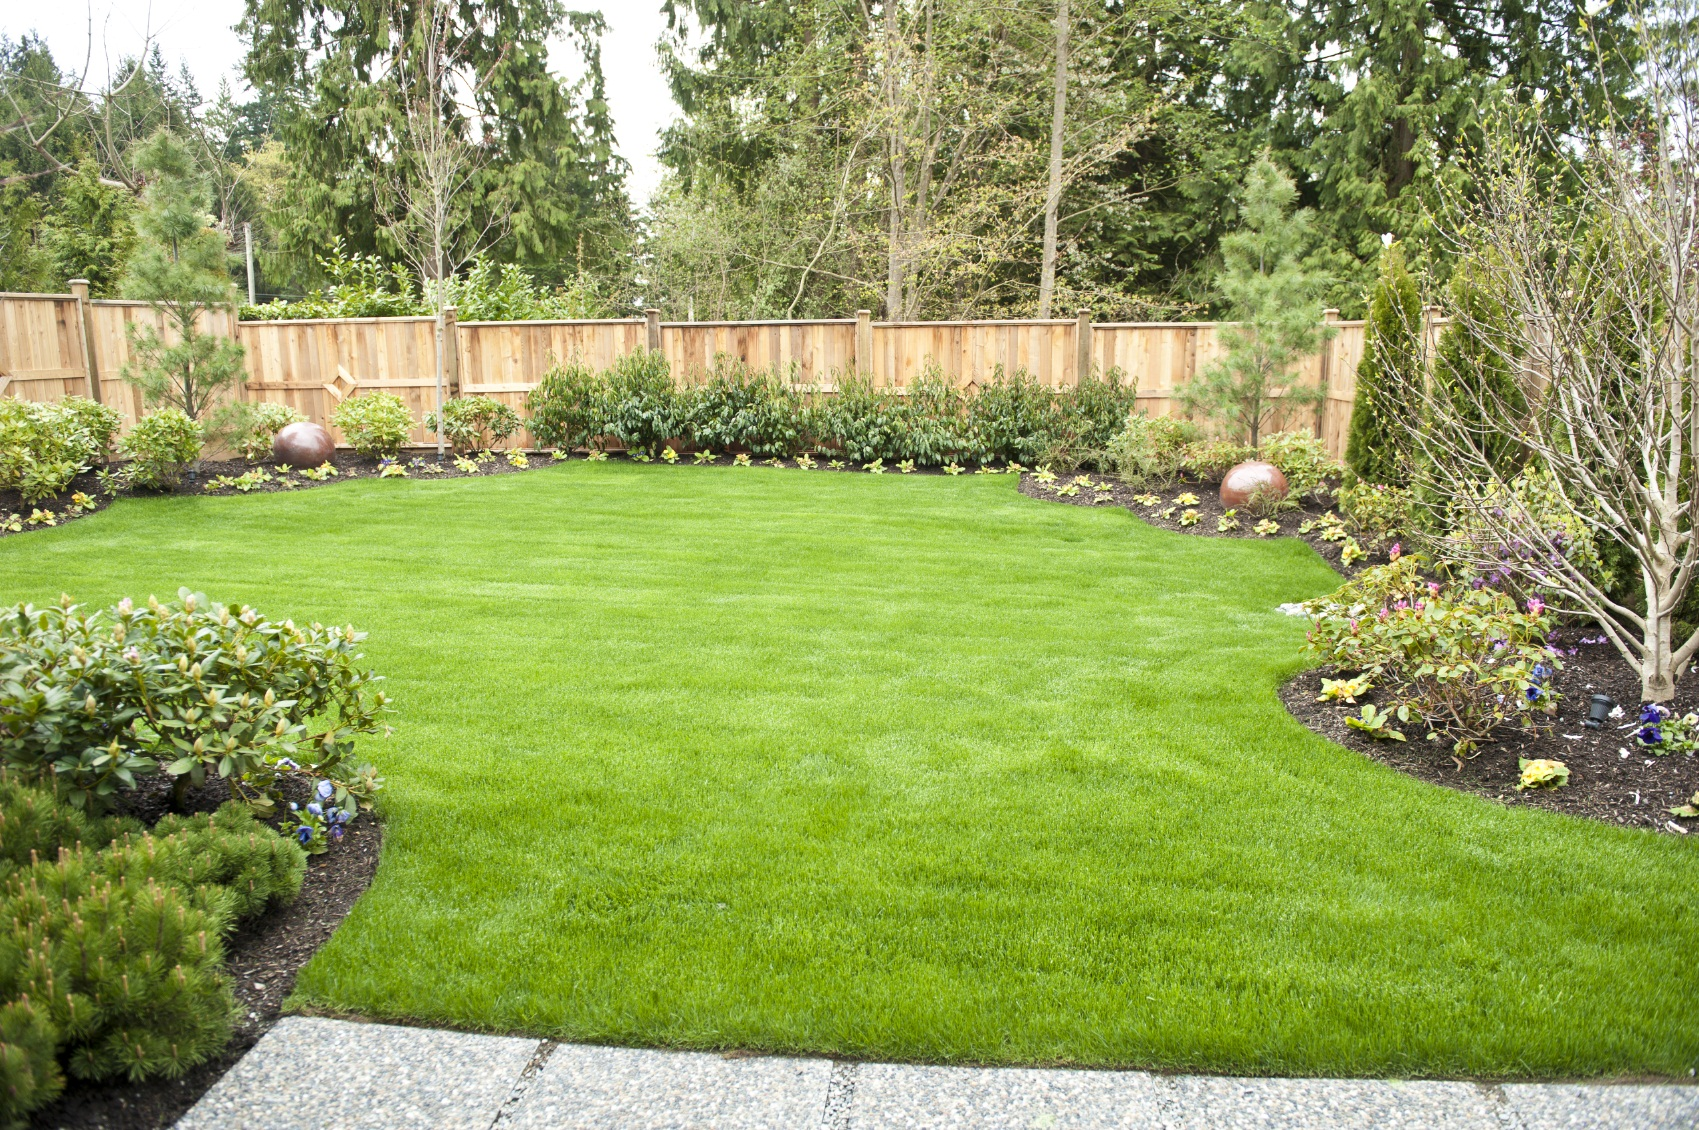 Garden in my backyard wordreference forums for Residential landscaping ideas